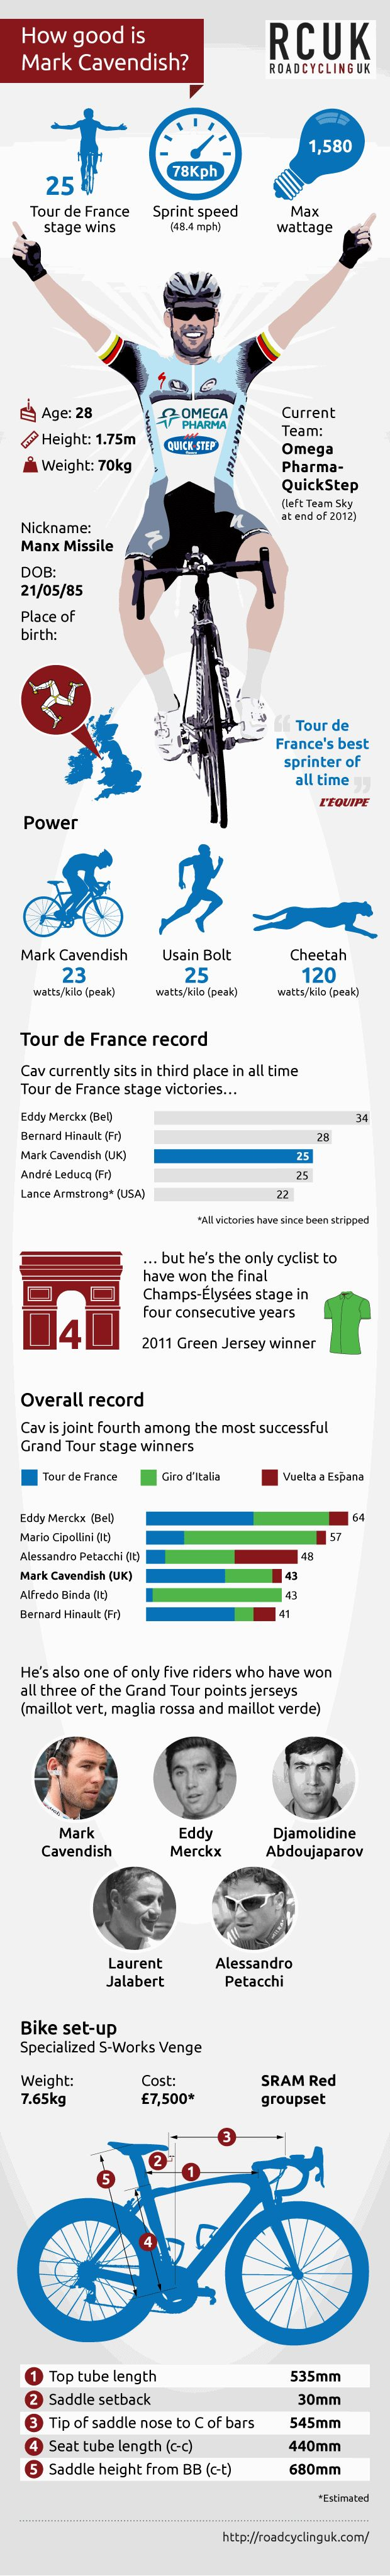 Infographic, Tour de France 2013, Mark Cavendish, ©Factory Media - how good is Mark Cavendish?